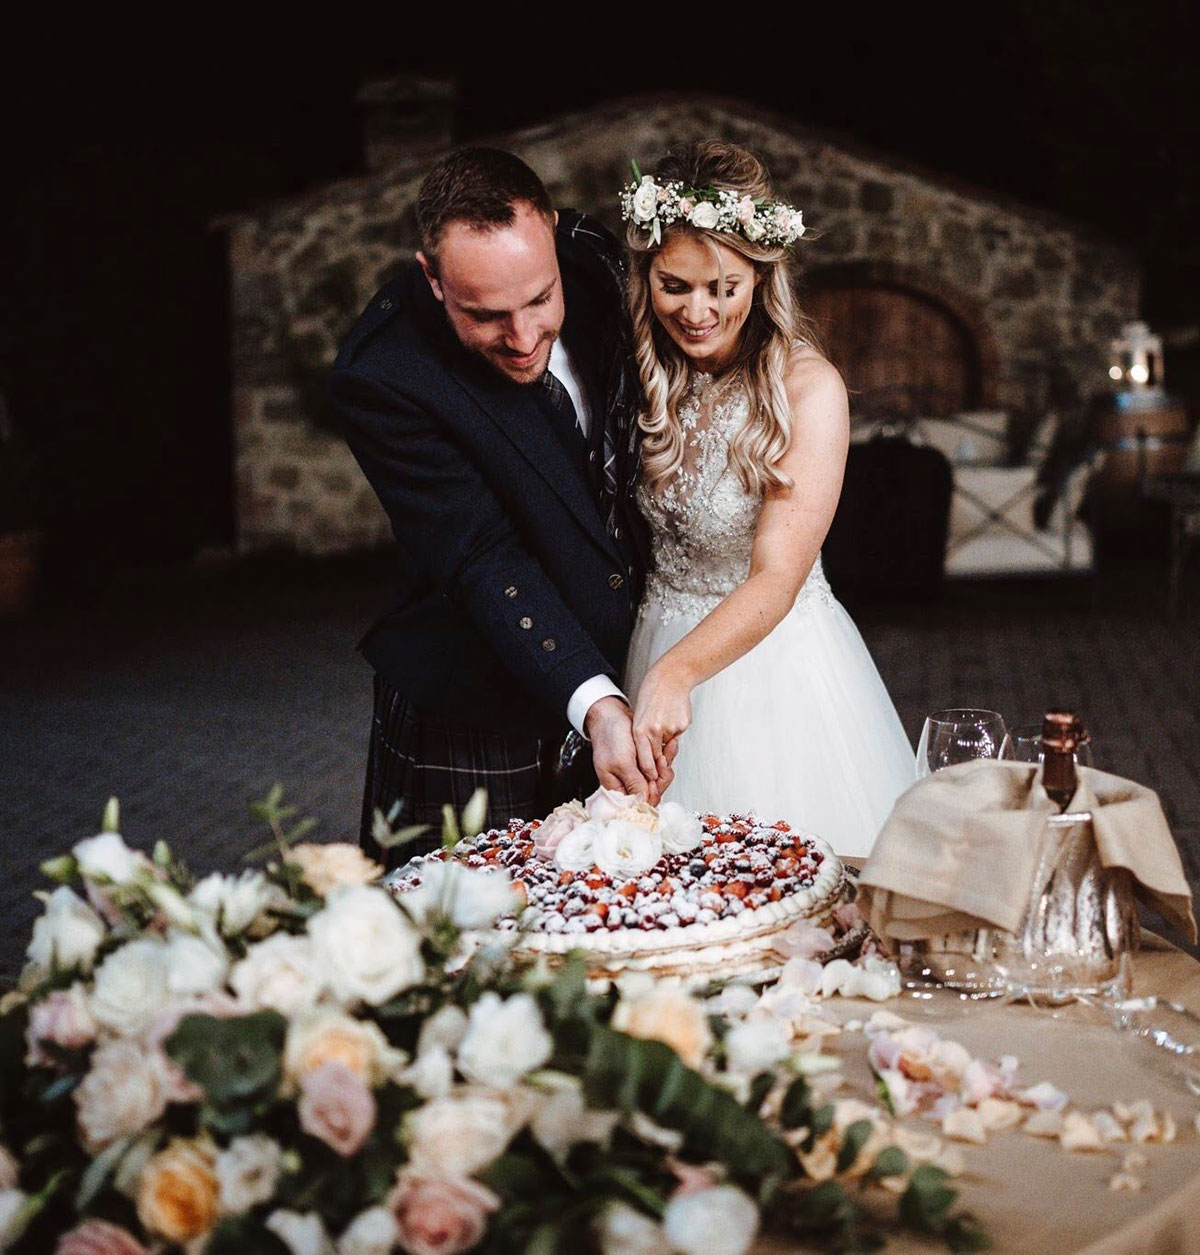 bride-and-groom-cutting-the-cake